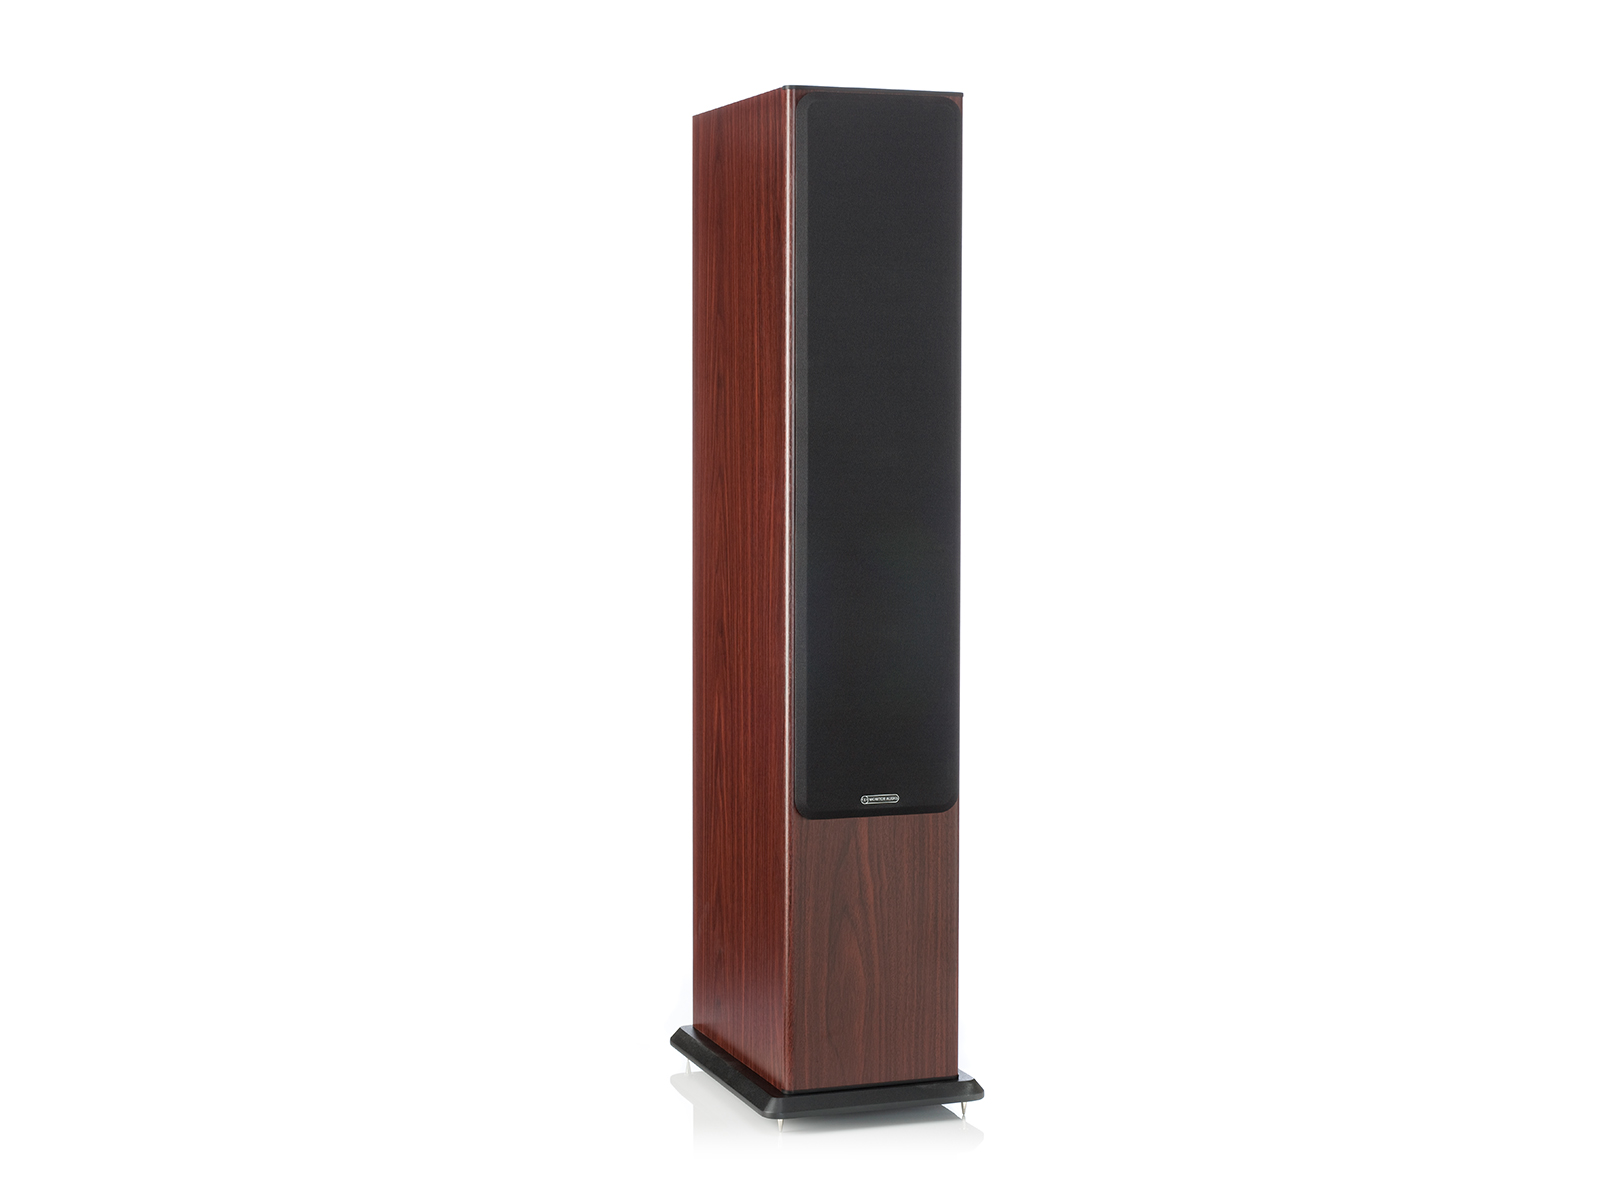 Bronze 6, floorstanding speakers, featuring a grille and a walnut vinyl finish.